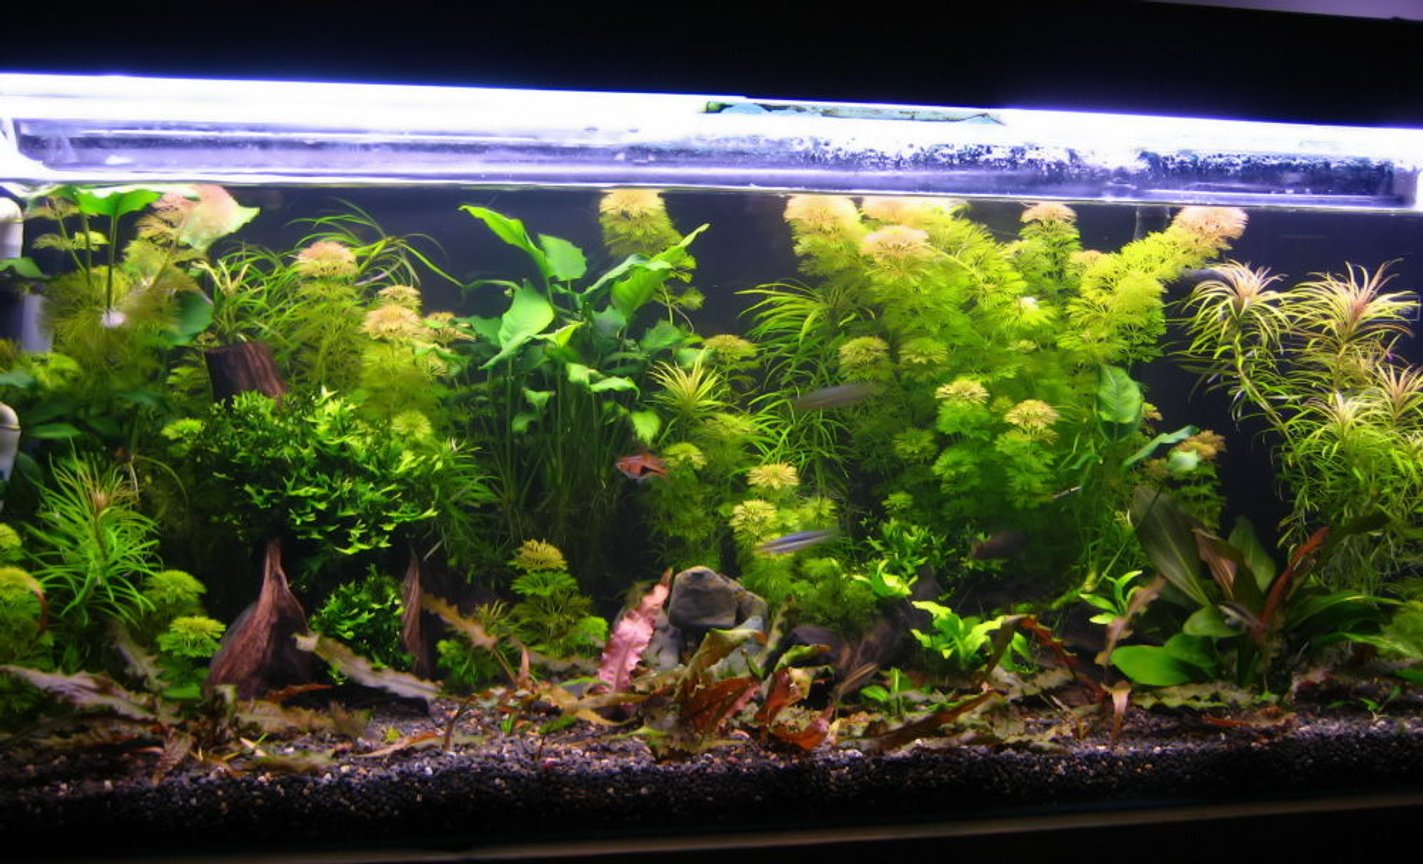 50 gallons planted tank (mostly live plants and fish) - New set-up. 8 weeks old.